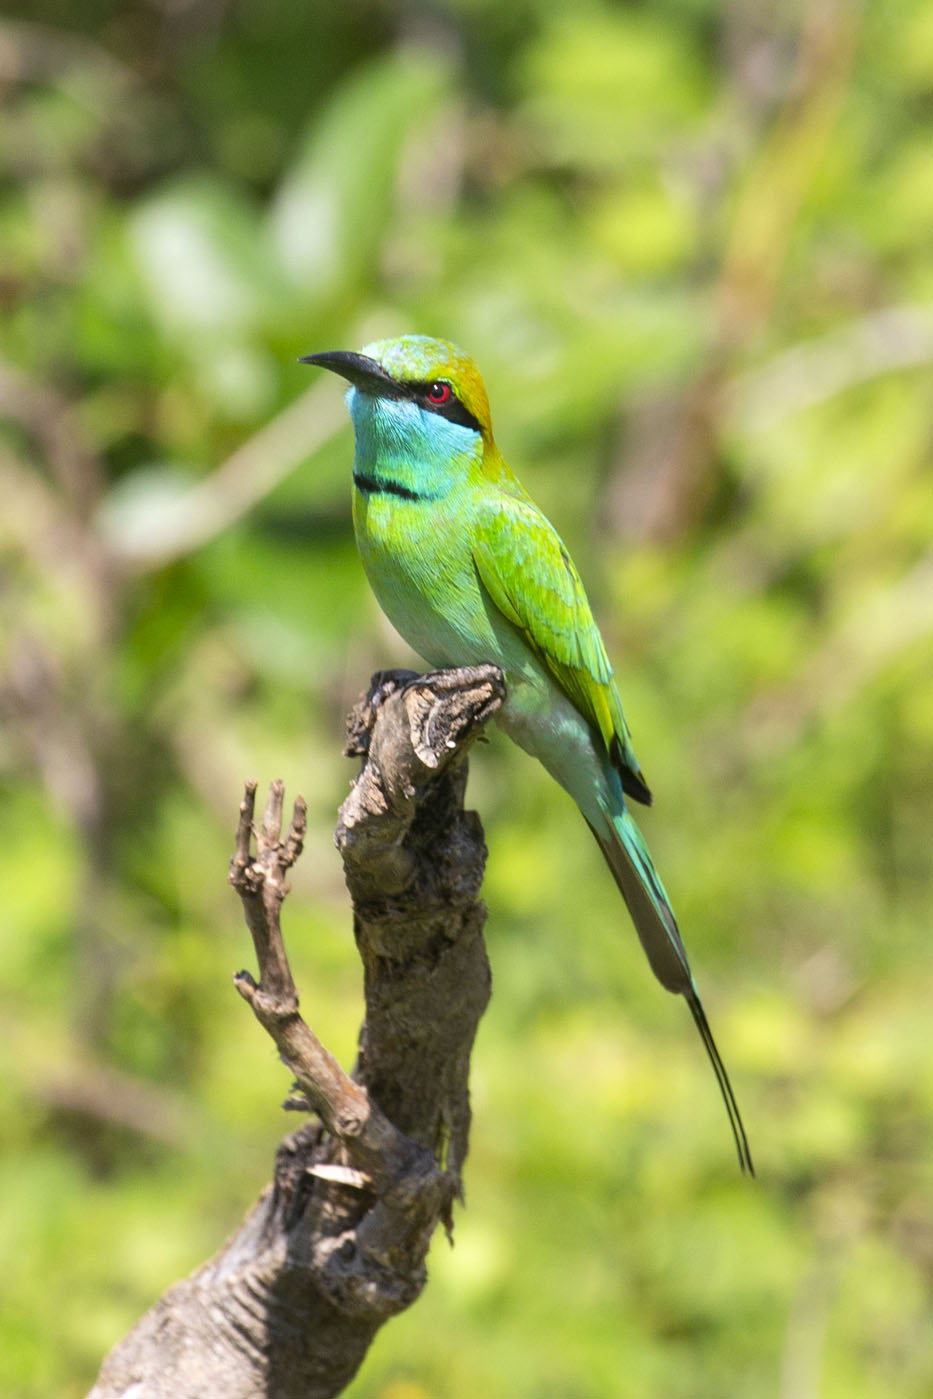 Bee-eater in the bright sunlight in Uda Walawe | Uda Walawe safari | 斯里兰卡